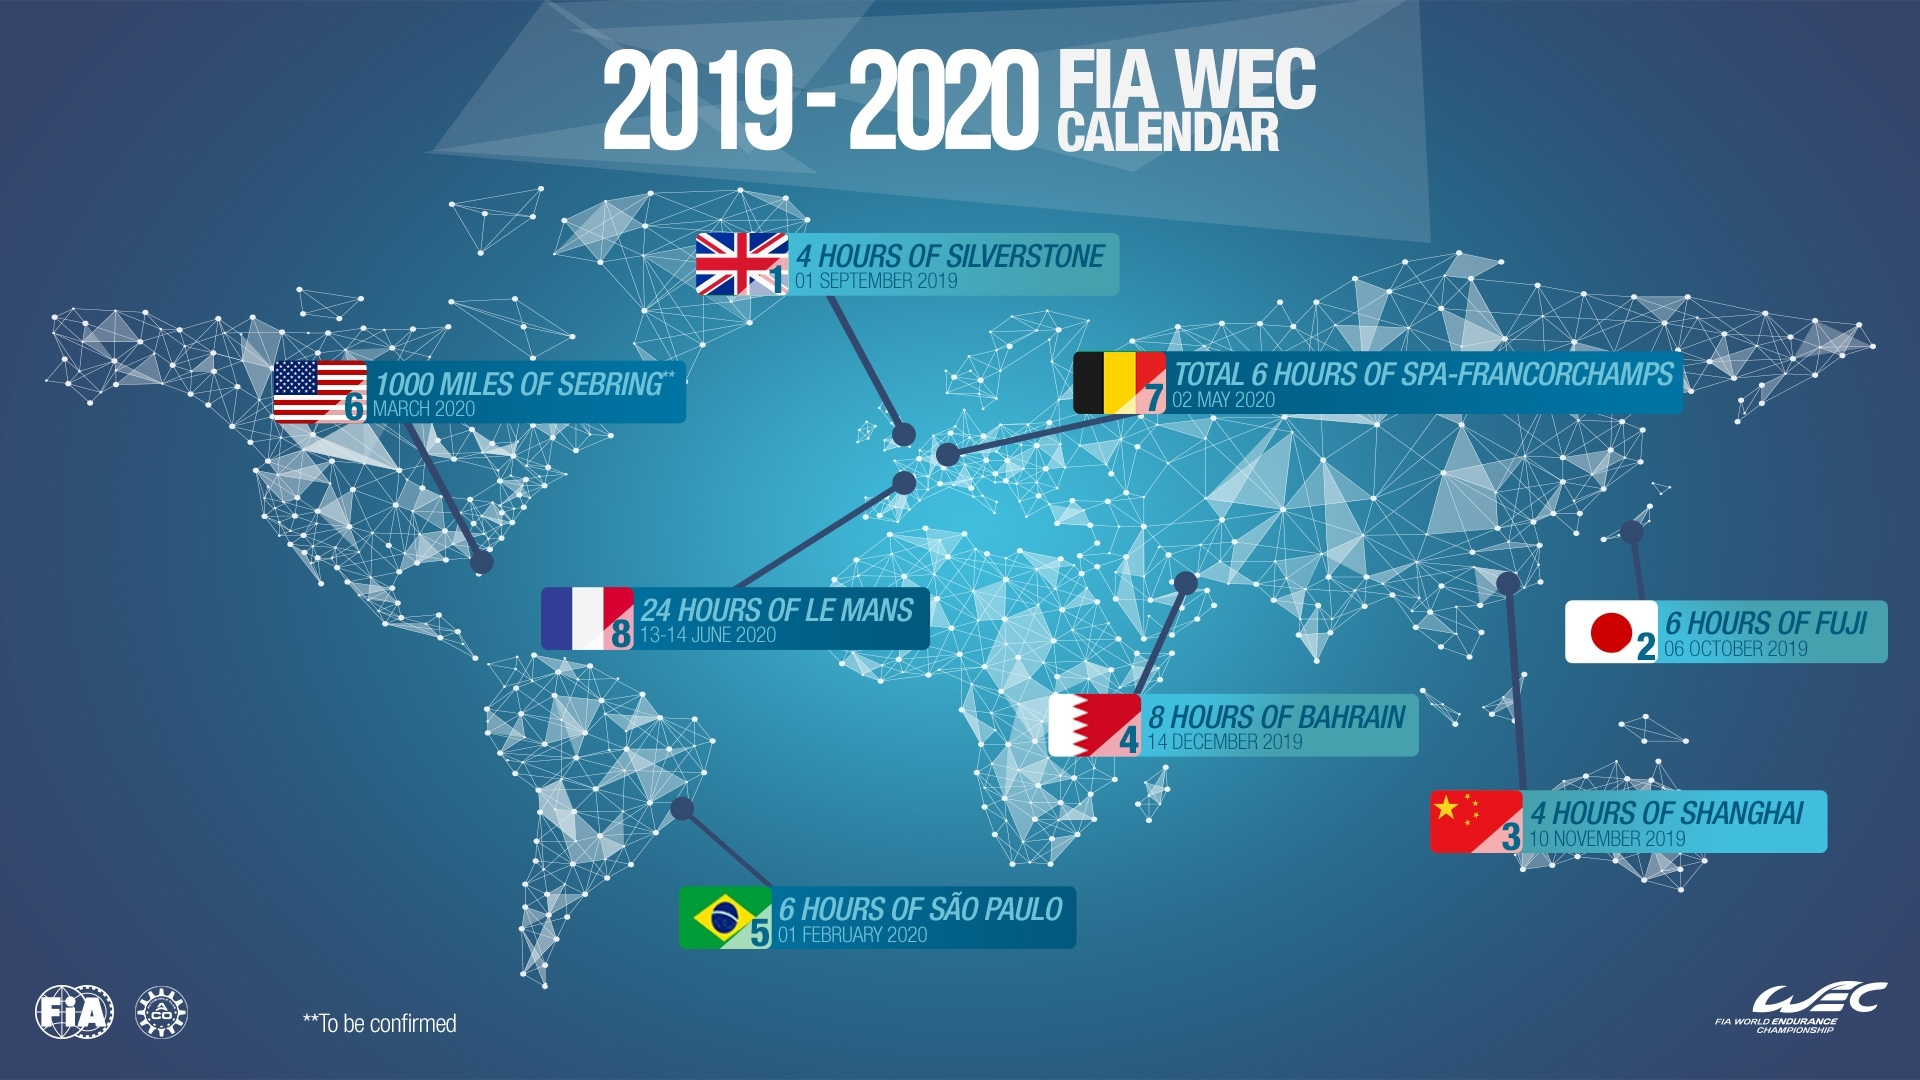 Wec - 2019/2020 Fia Wec Calendar Is Approved | Federation